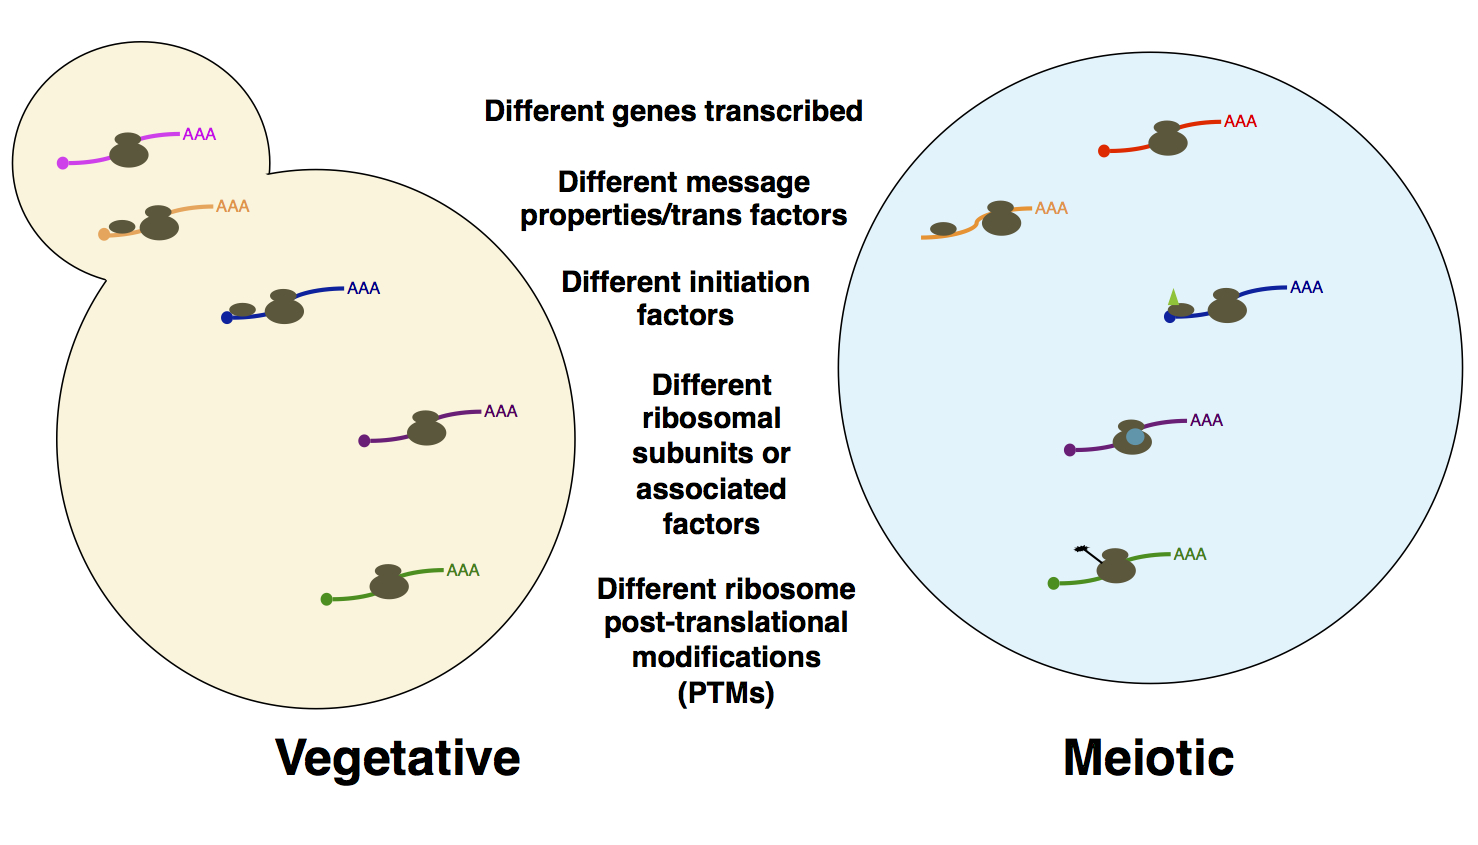 Probing the basis for noncanonical translation in meiotic cells.  A number of factors that may be responsible for the unusual degree of dynamic translational regulation and uORF translation in meiosis are shown. We are systematically probing examples of cis- and trans- factors like those outlined here, with the goal of understanding what is special about translation (particularly translation initiation) in meiosis.